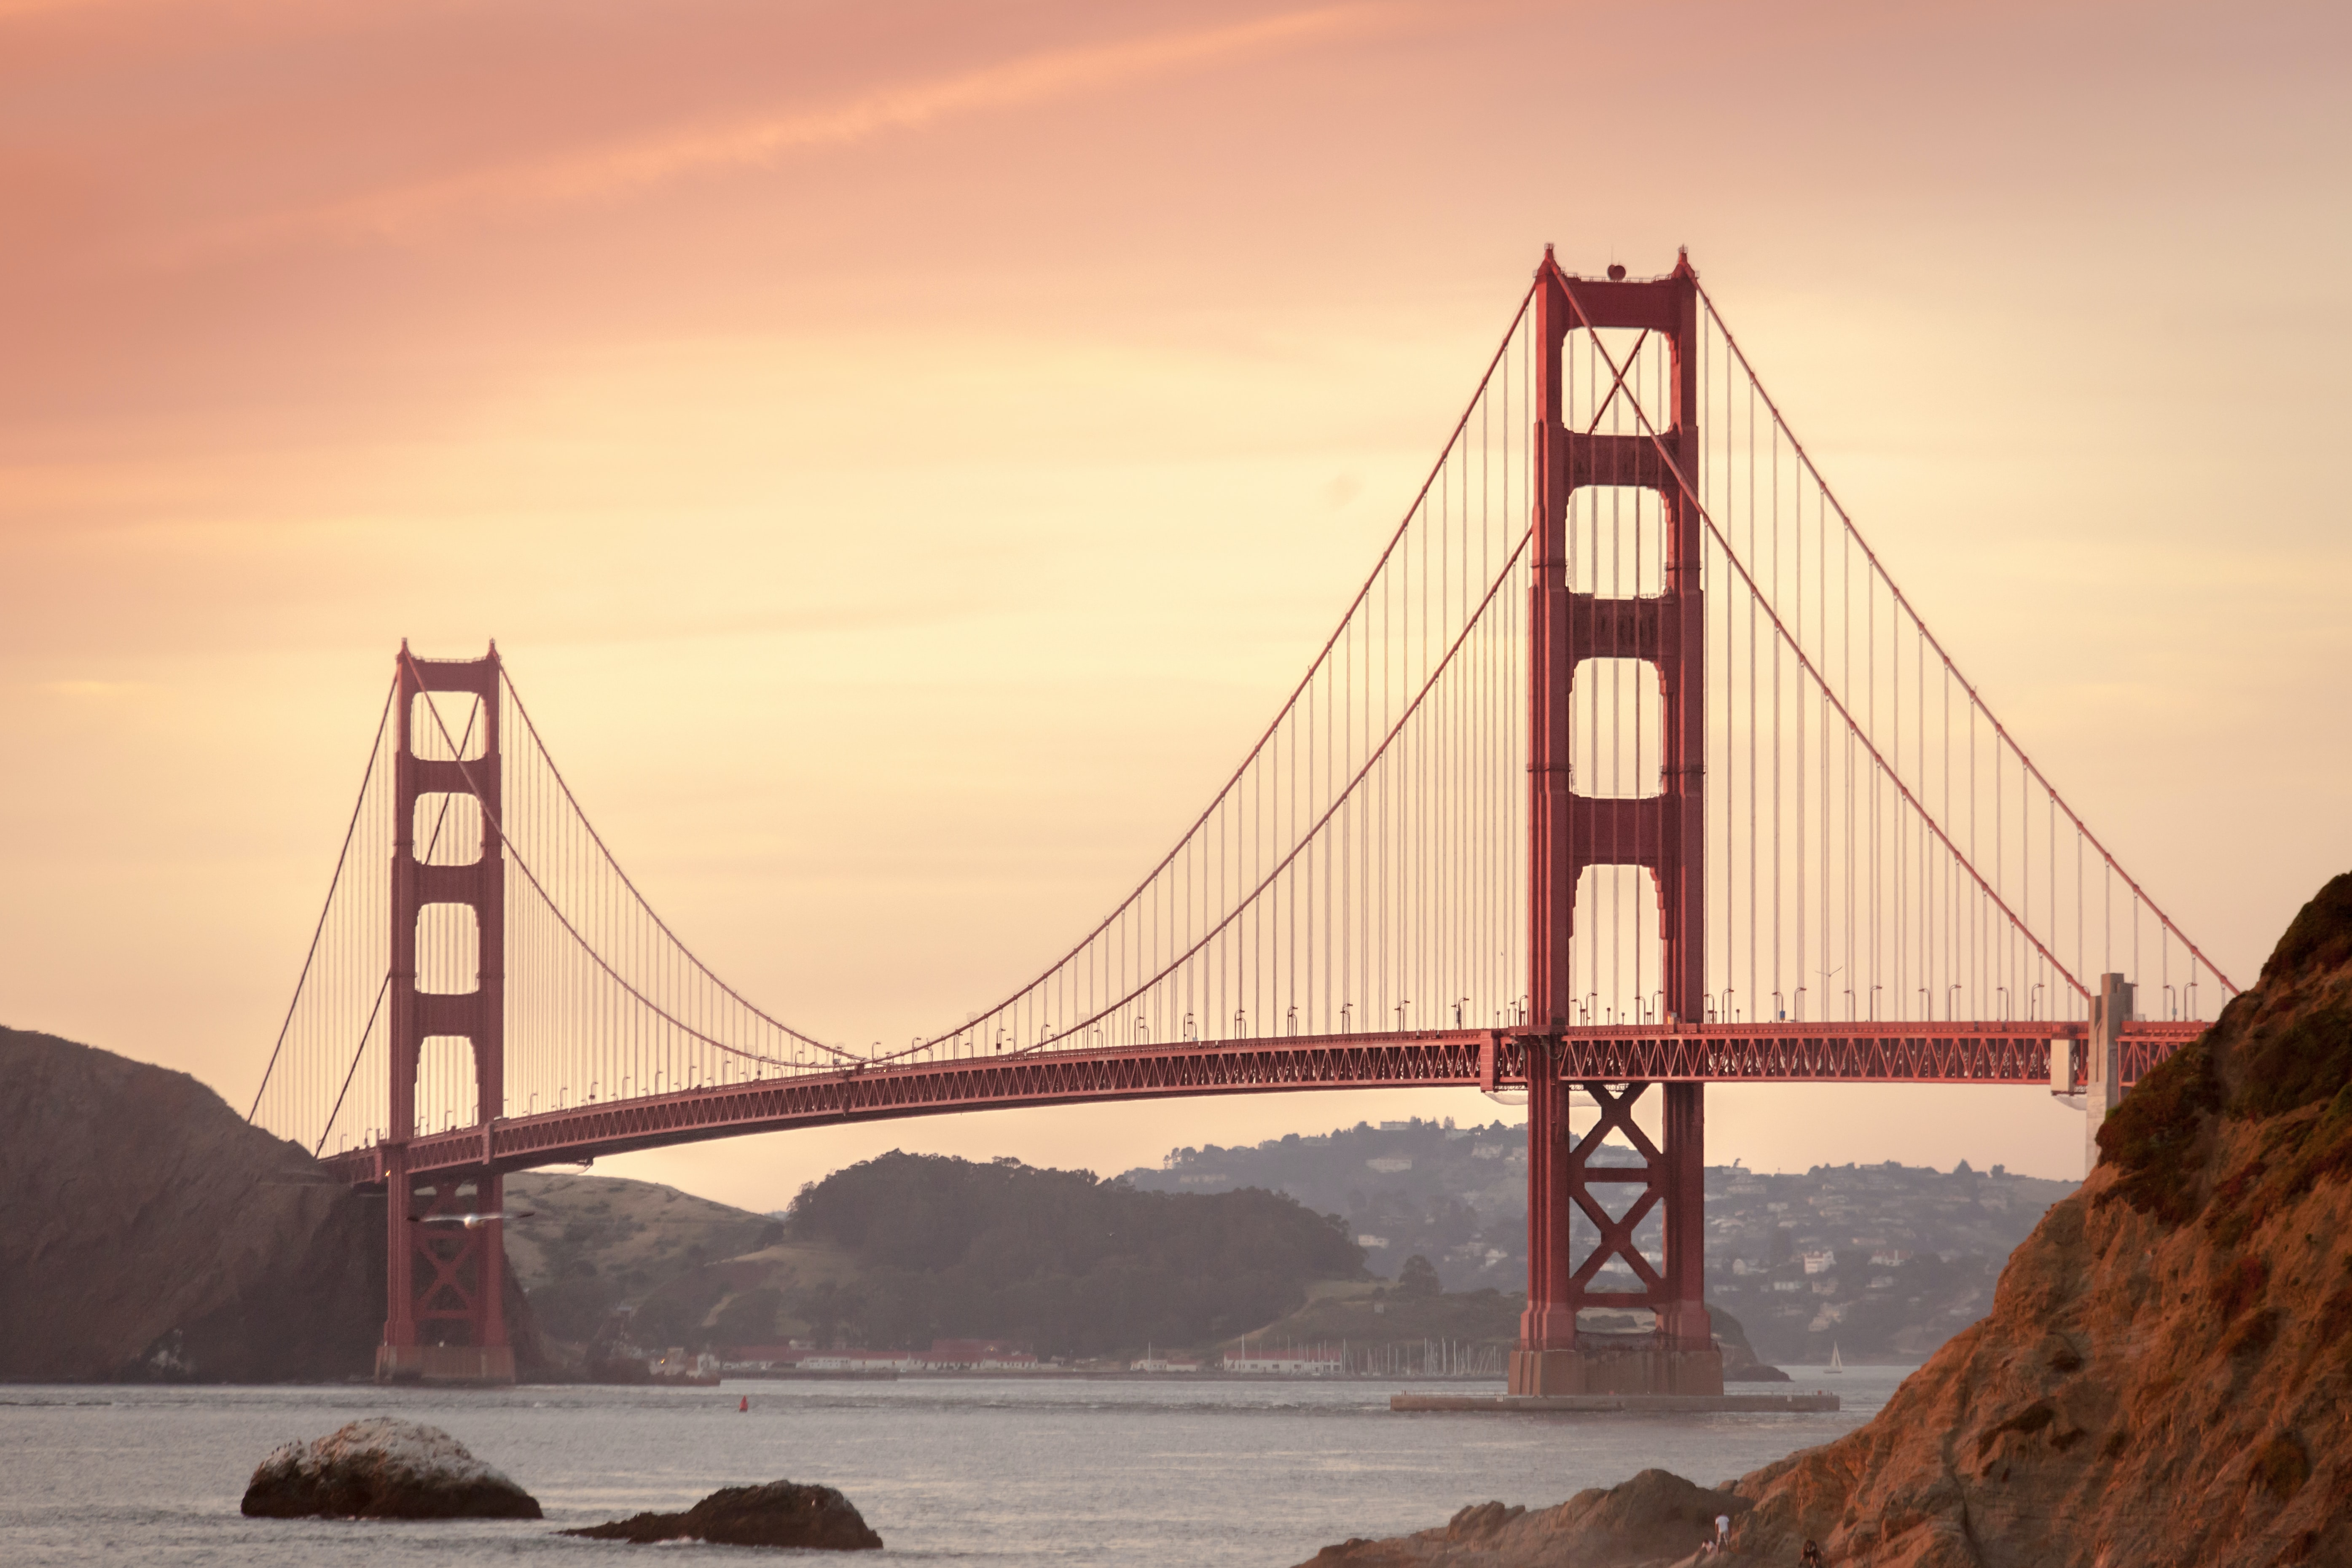 Golden Gate Bridge in San Francicso with a dusky orange sunset and haze.